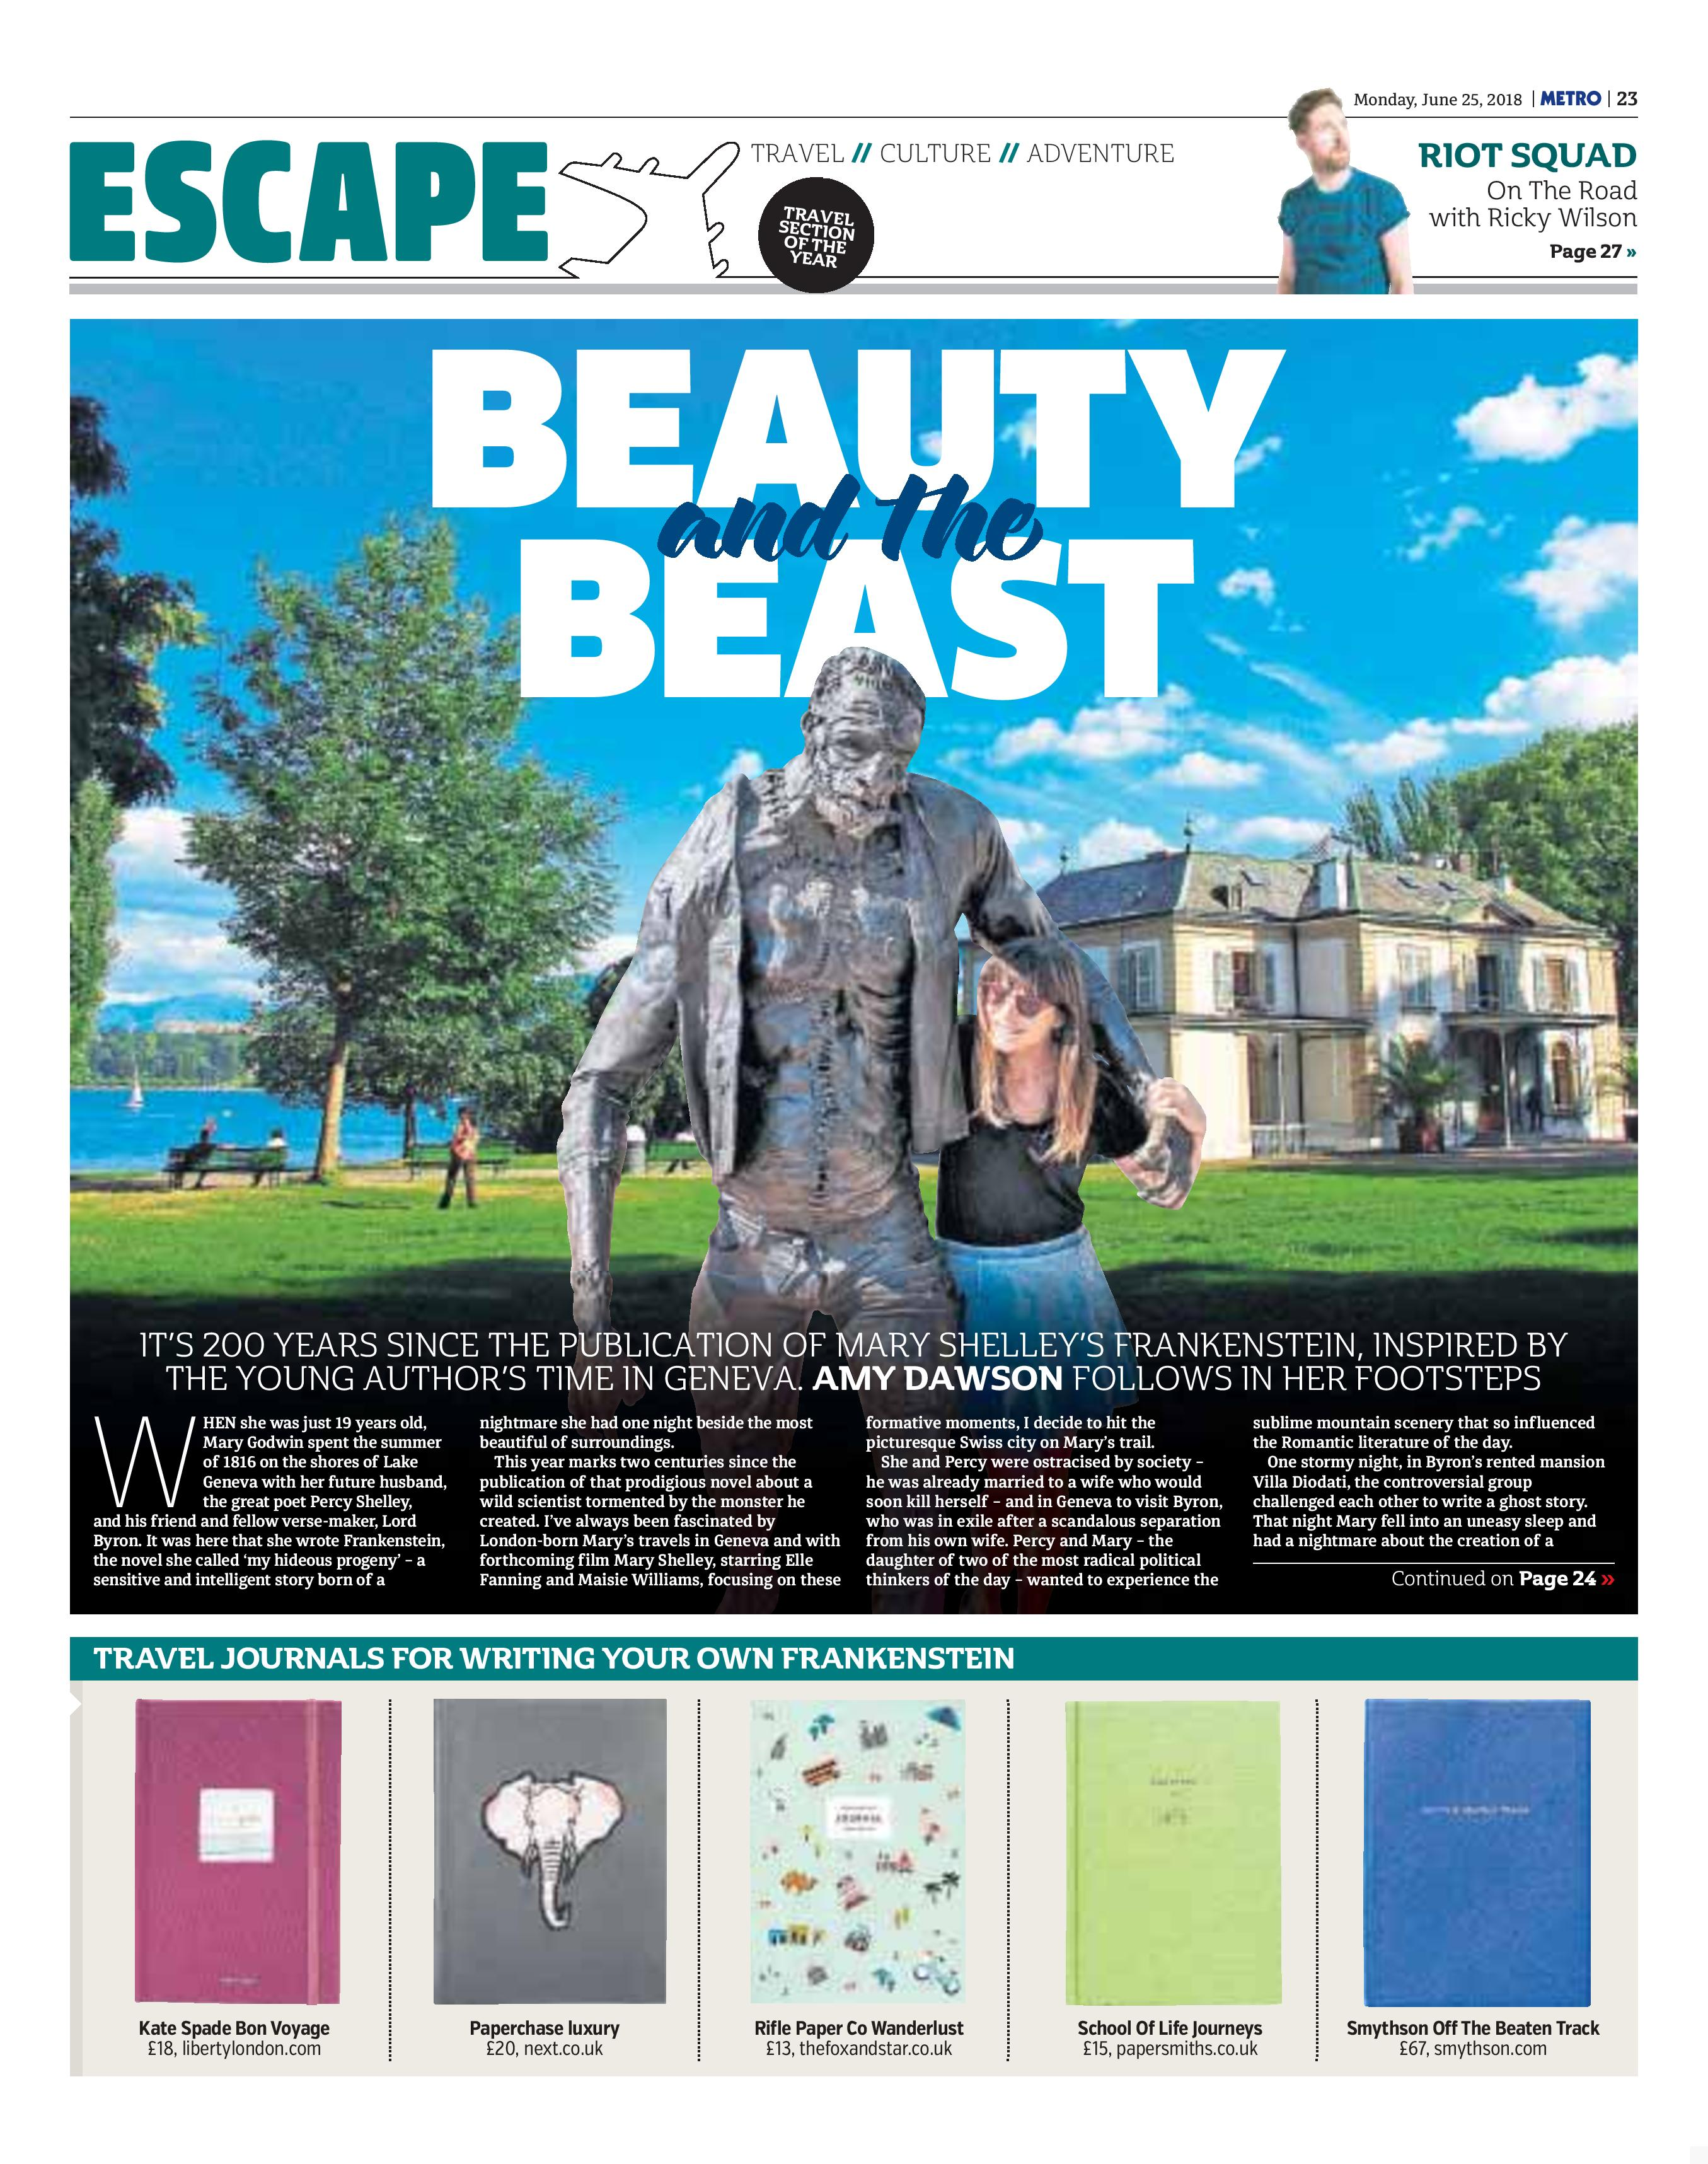 Escape: Beauty and the Beast (Metro, 25th Jun 2018)